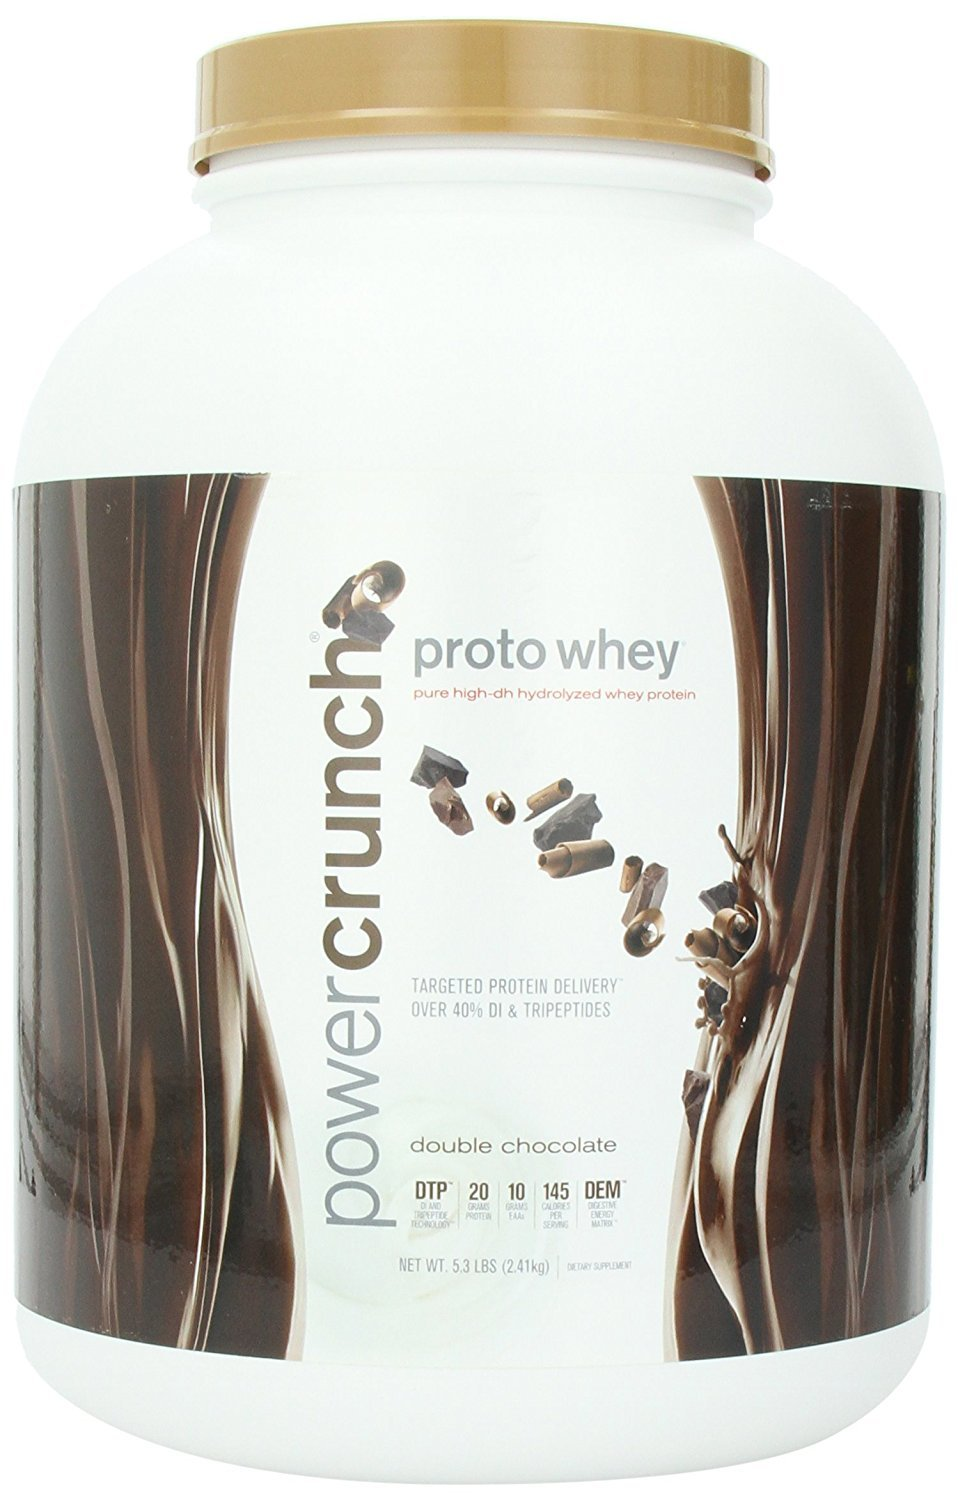 Proto whey pure high-dh hydrolyzed whey protein double chocolate 5.3 lb 2.41kg